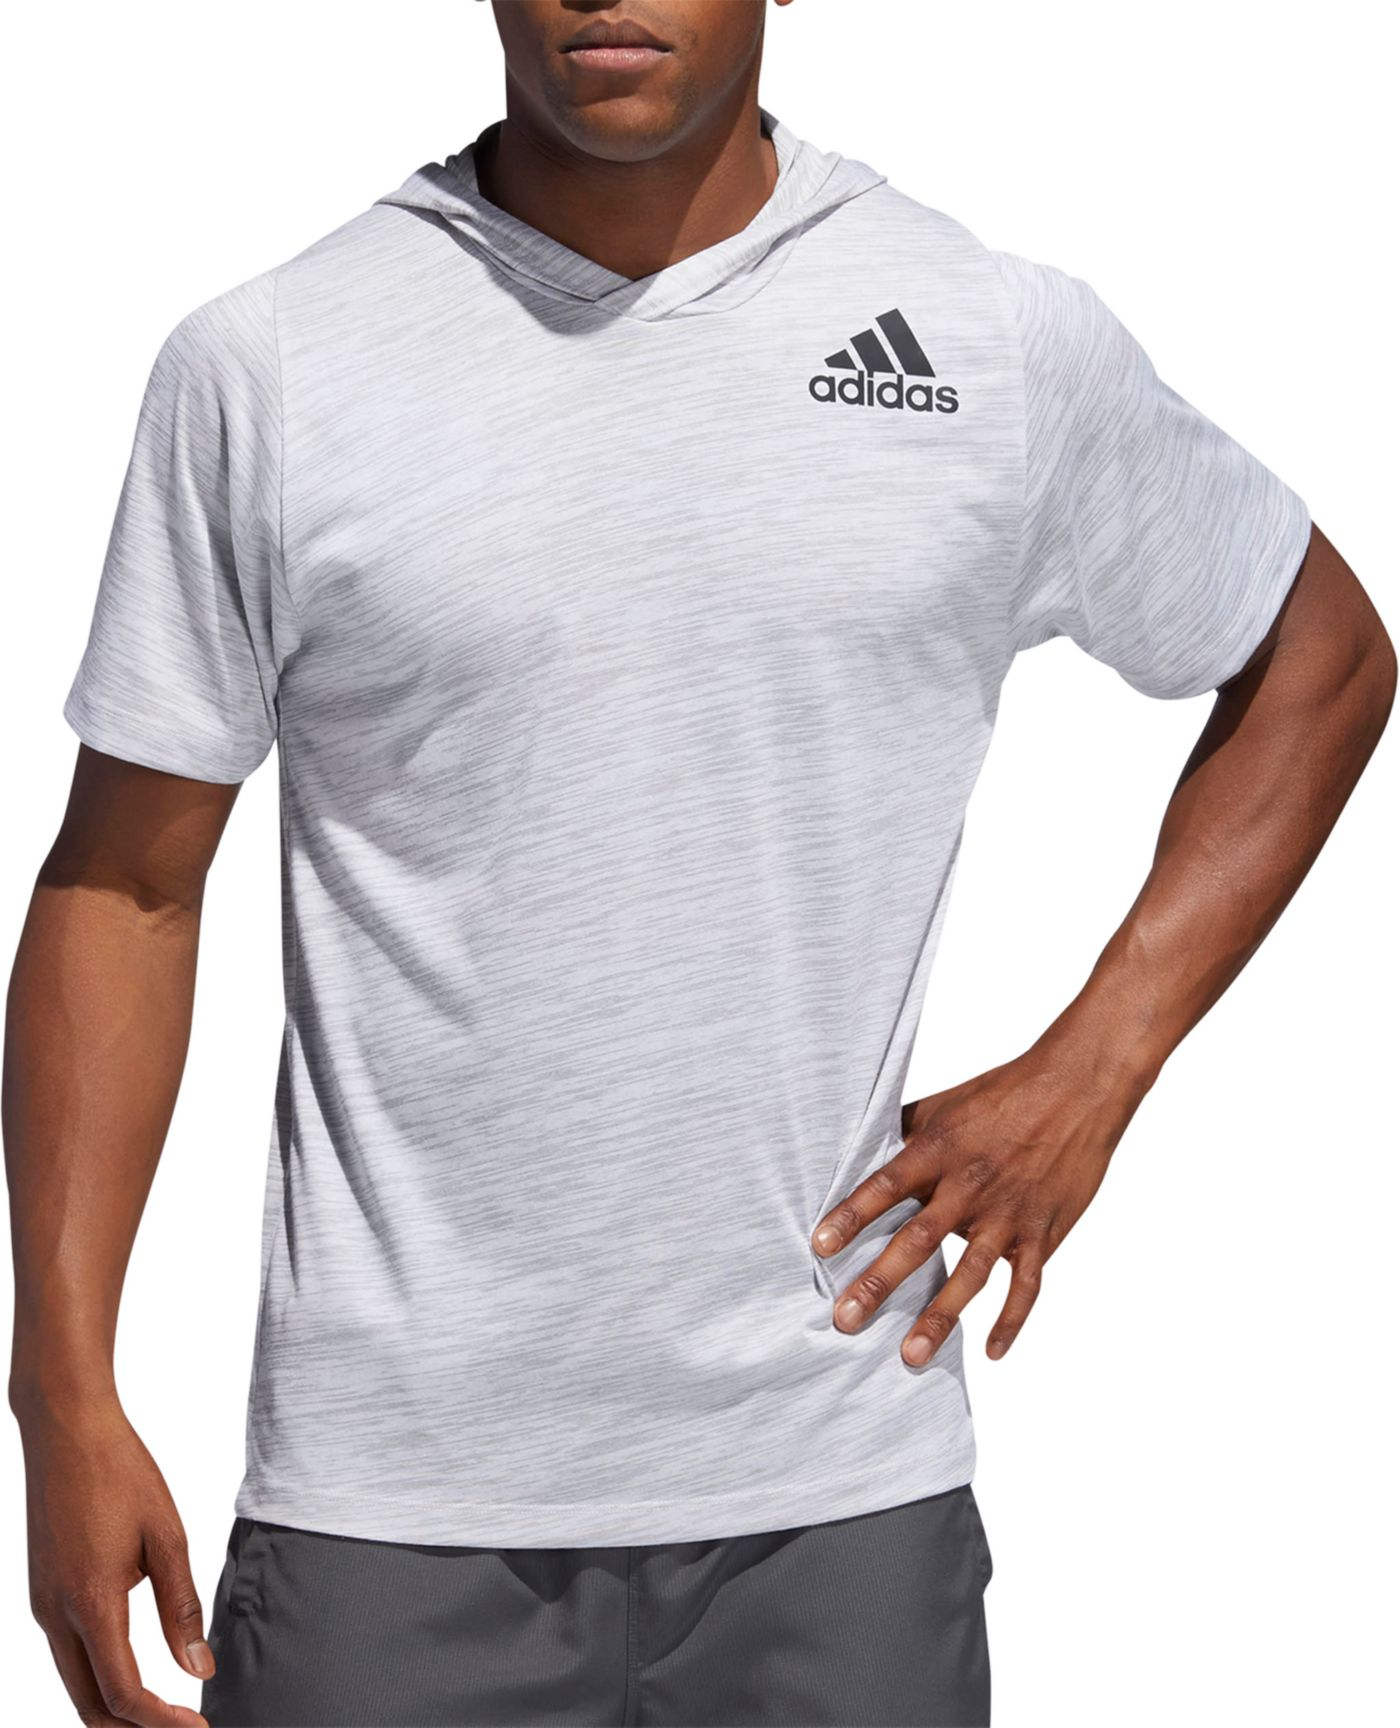 adidas Men's Three Stripe Life FreeLift All-American Short Sleeve Hoodie